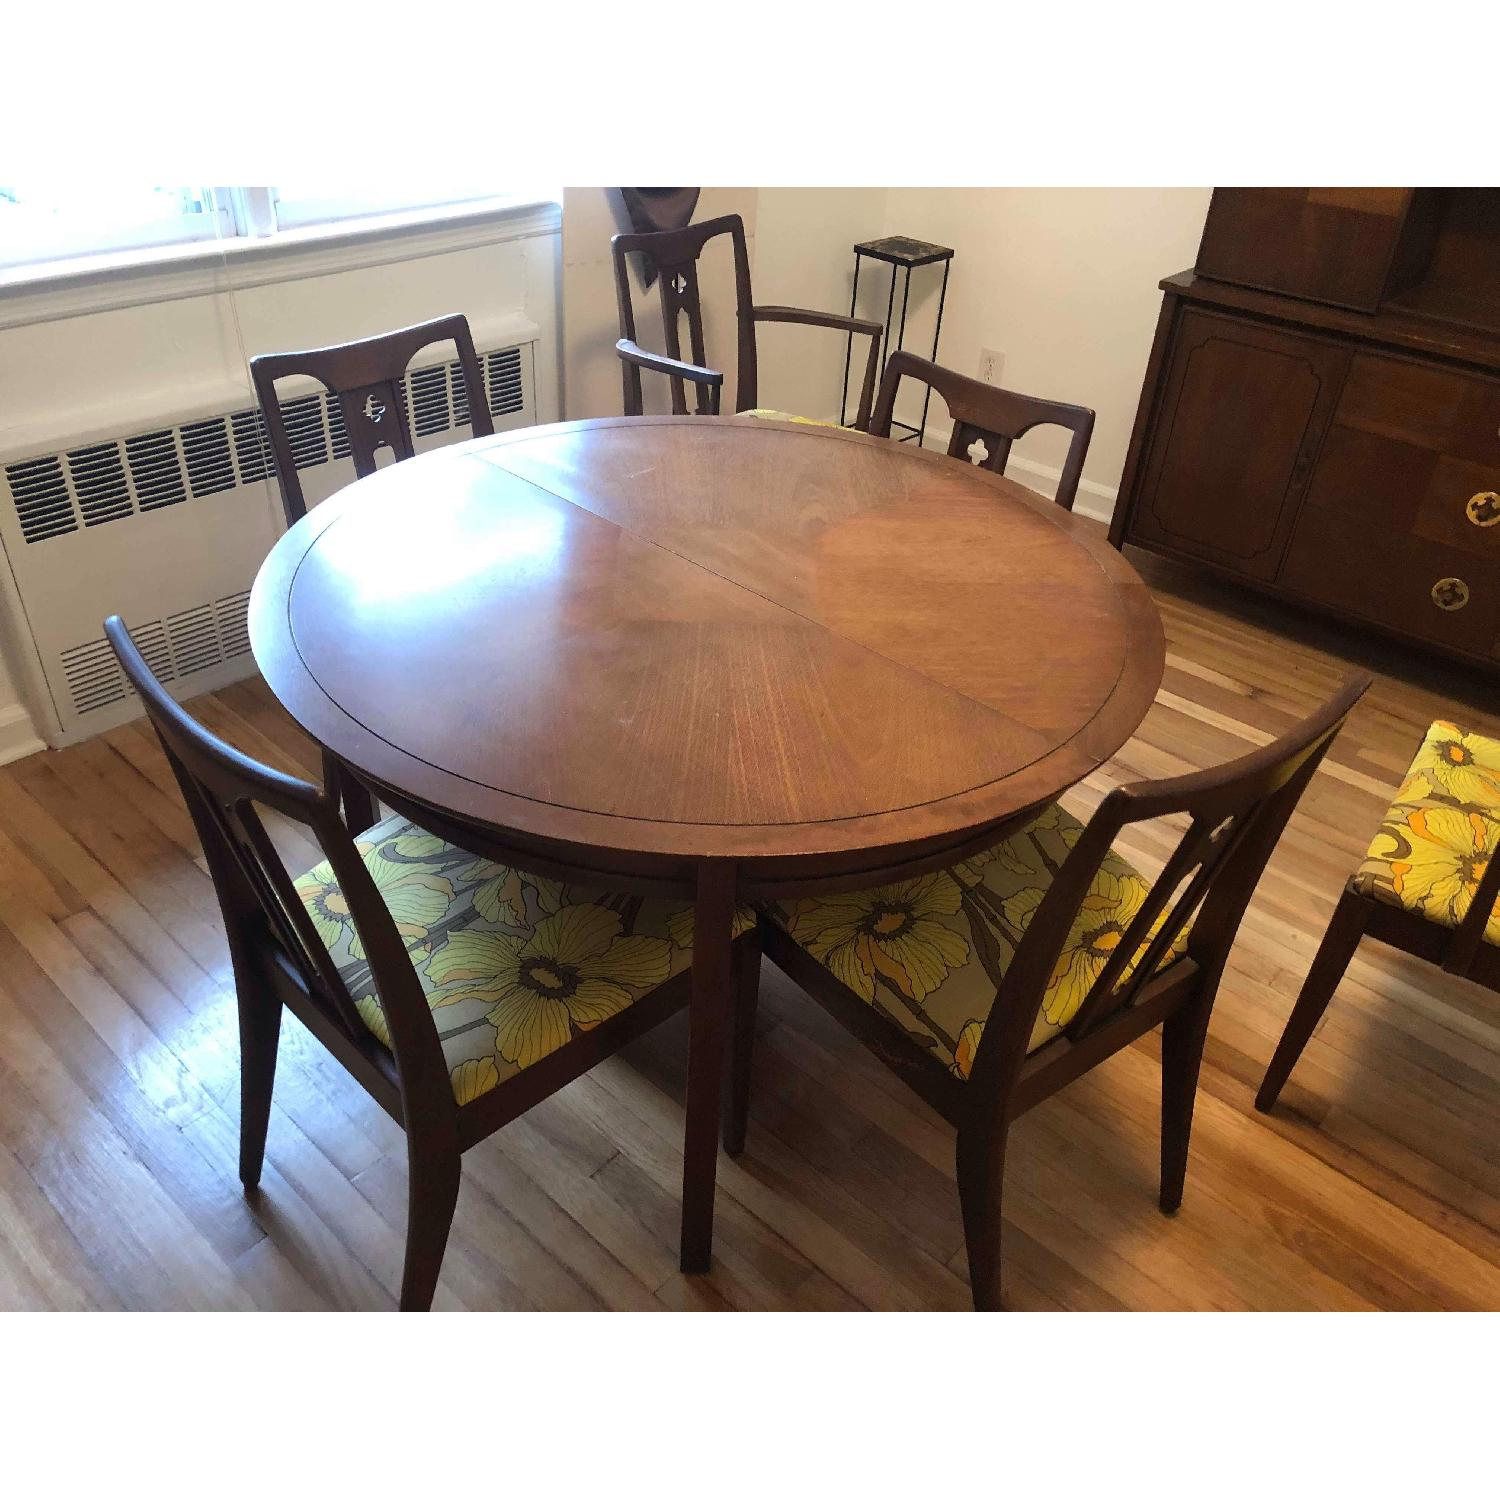 Drexel Mid Century S Extendable Dining Table W AptDeco - Extendable dining table seats 6